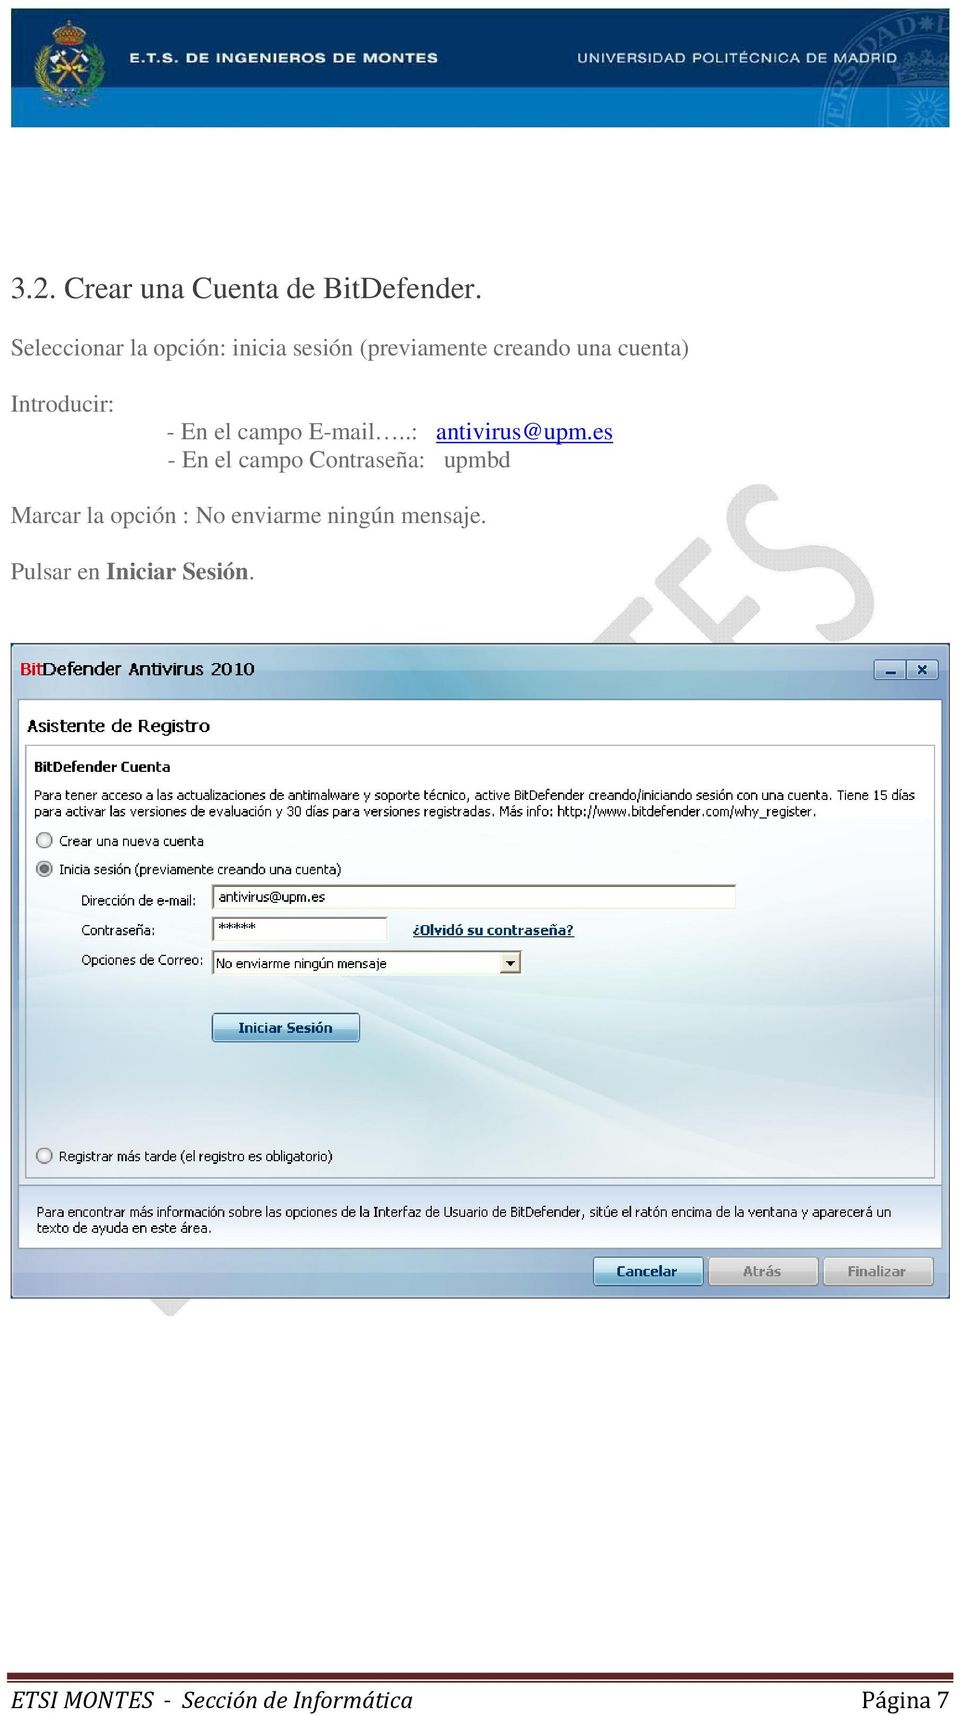 Introducir: - En el campo E-mail..: antivirus@upm.